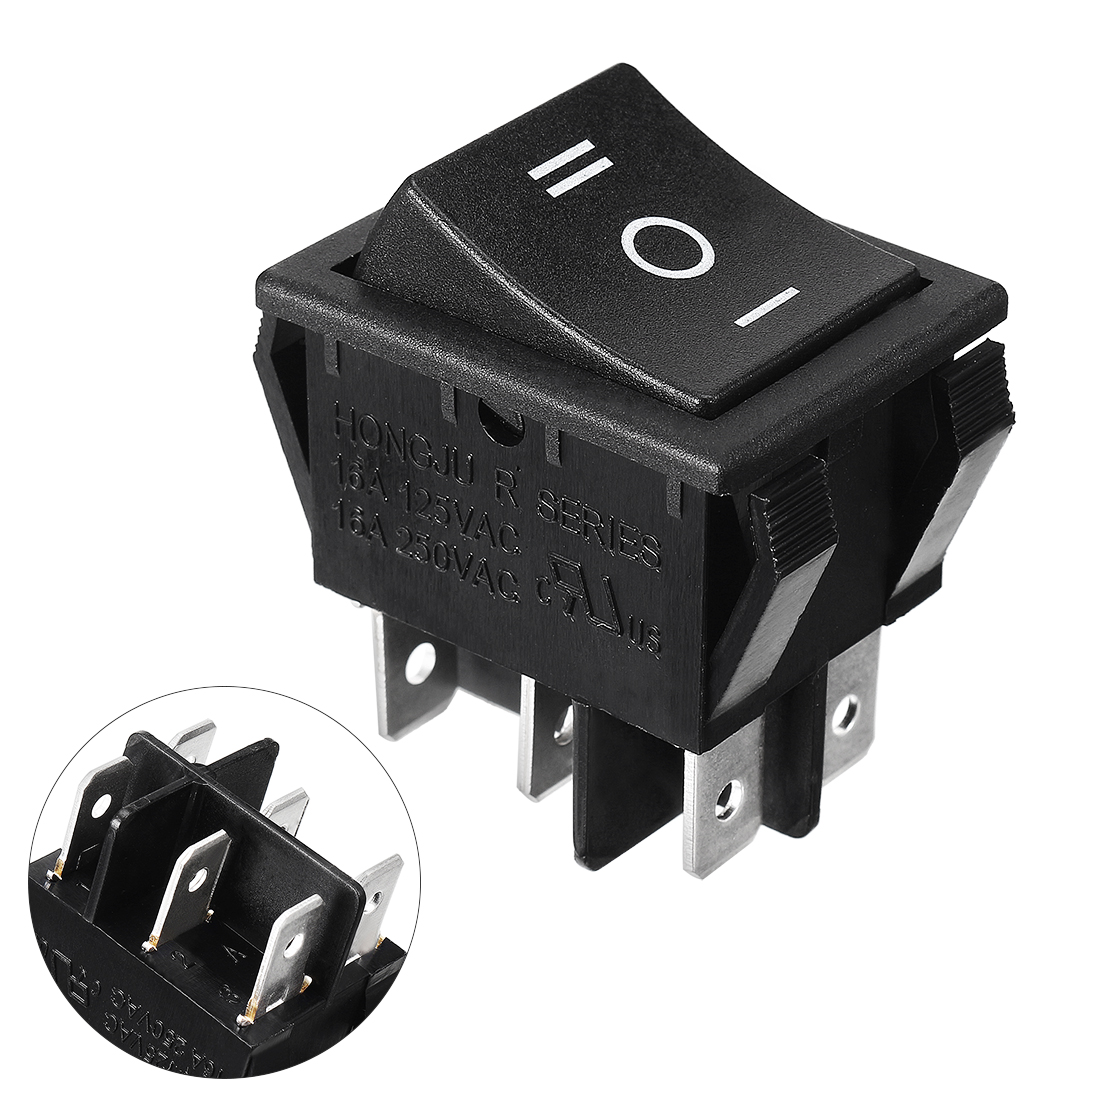 Black AC 250V/16A DPDT ON-OFF-ON 6 Pin Rocker Switch UL Listed